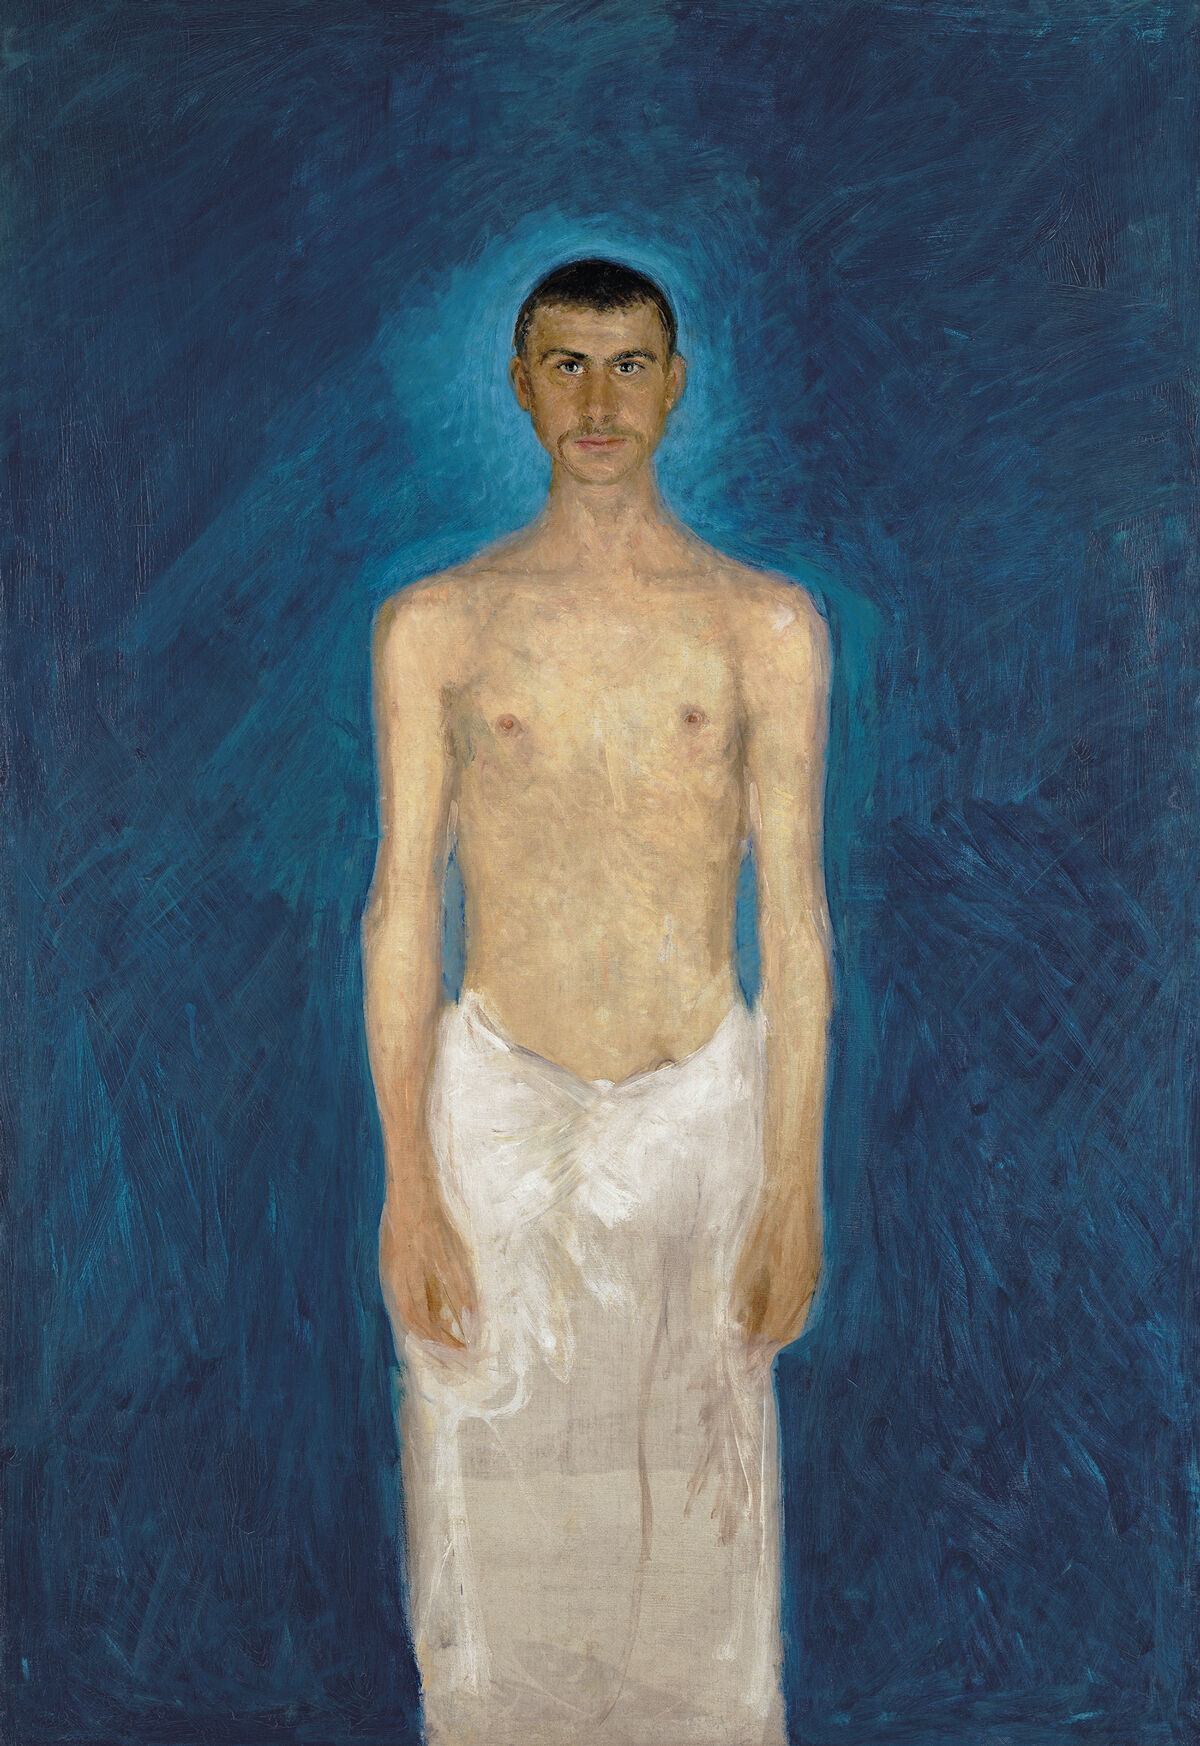 Gerstl, Semi-Nude Self-Portrait, 1902-04. Courtesy of the Leopold Museum, Vienna.